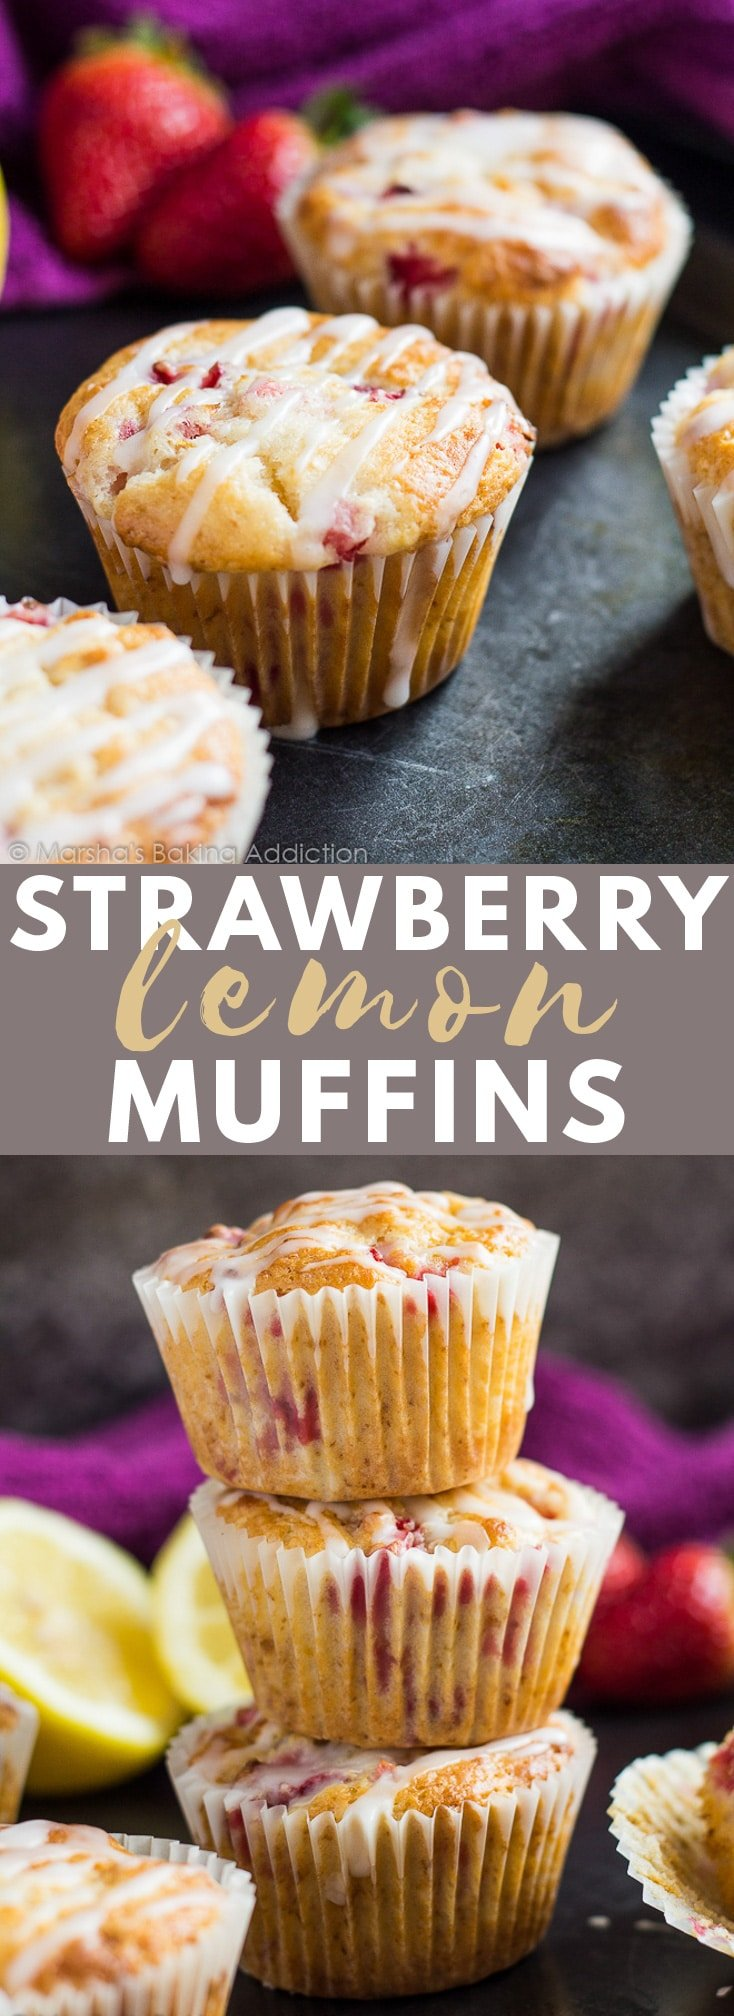 Strawberry Lemon Muffins- Deliciously moist muffins infused with lemon juice and zest, loaded with strawberries, and drizzled with a lemon glaze! #strawberry #lemon #muffins #muffinrecipes